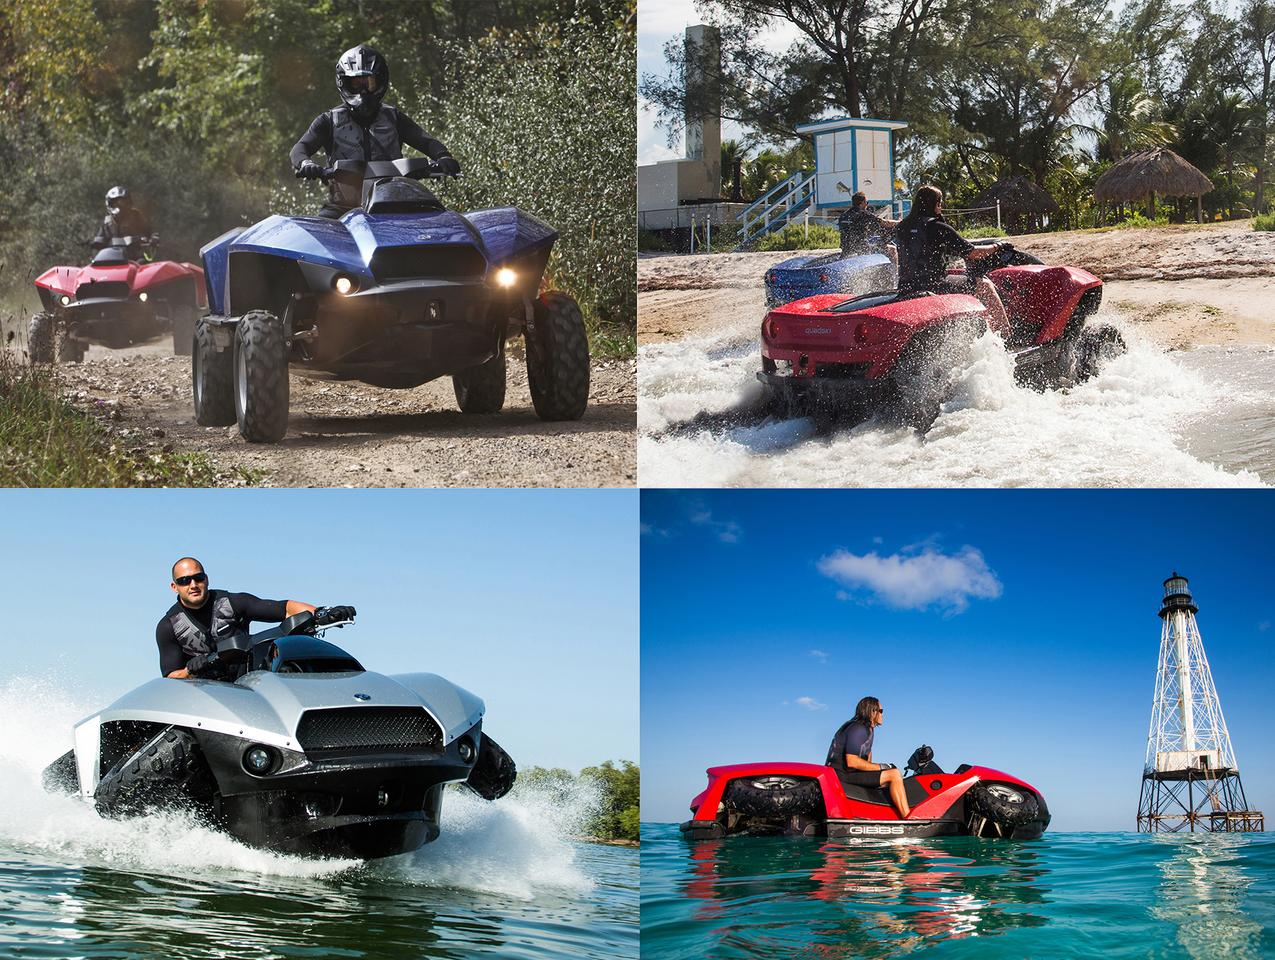 The Gibbs Quadski has been available for many years as a single seater, and now offers a dual seat, and is fast developing a global dealer network.